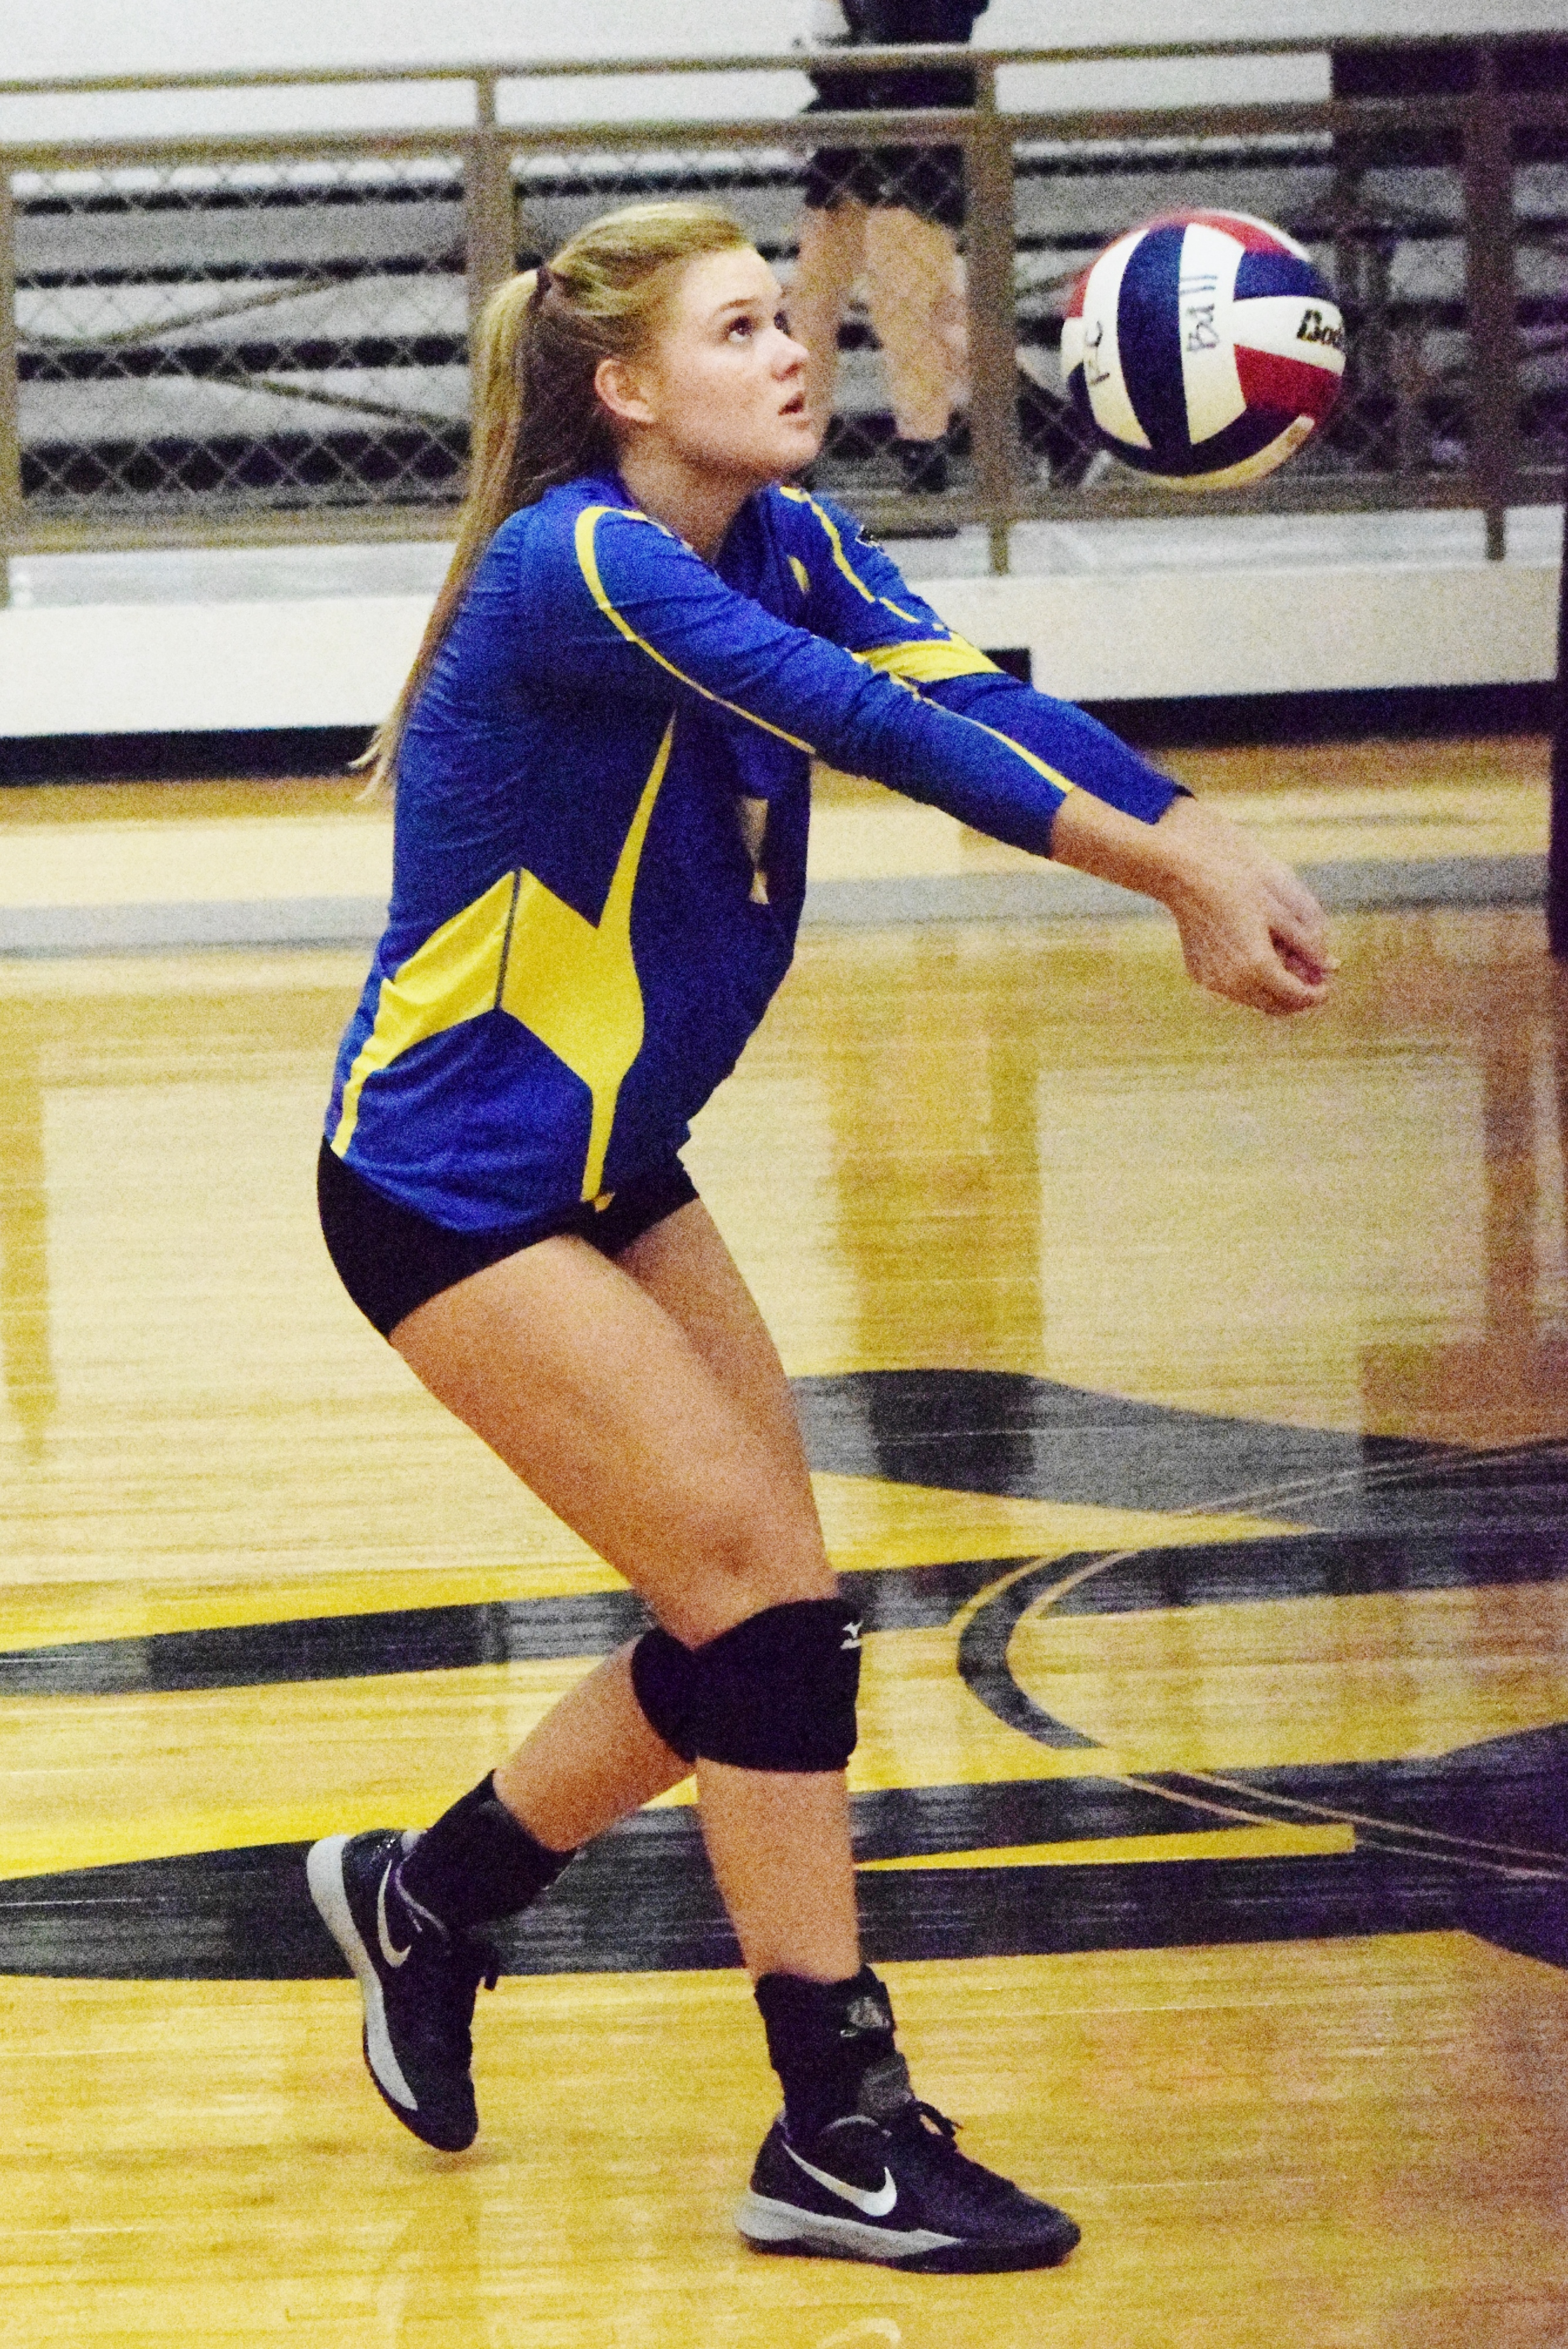 (photo by Bev White) Kayla Igleheart with a hit against Royce City.